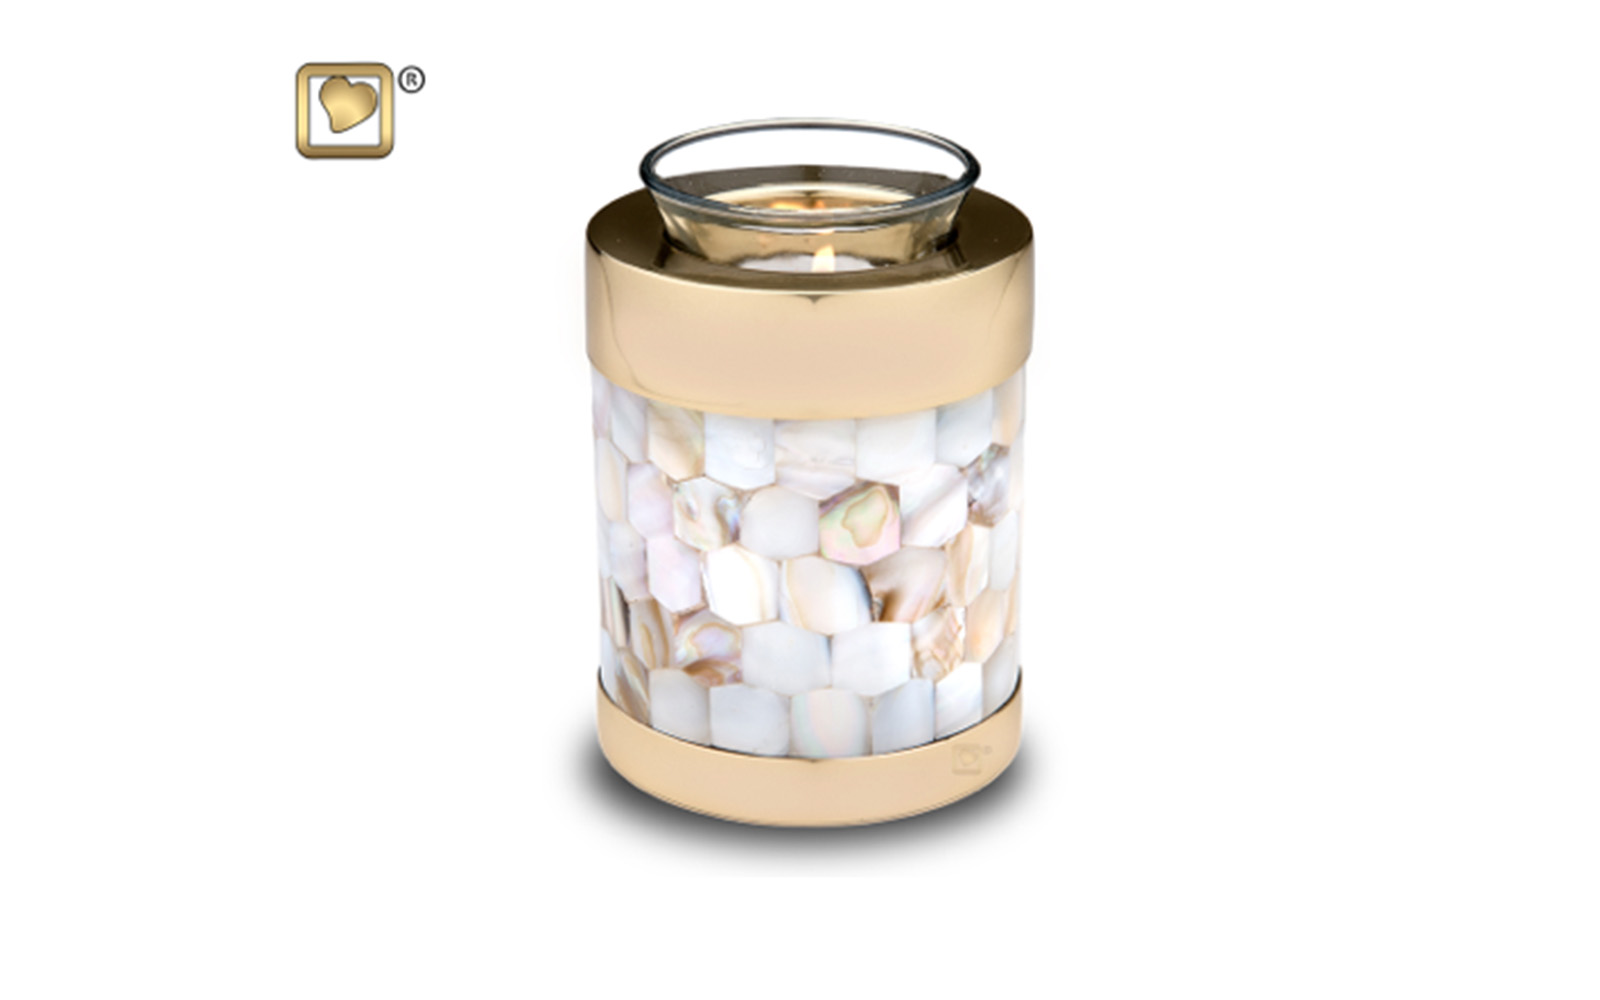 """Tealight Mother Of Pearl Urn     Made of Solid Brass with a Polished Finish, Mother of Pearl Hand Cut, measuring 5"""" high, 18 Cu. inches, up to 13 lbs. Glass Insert included, Candle not included,  $98"""